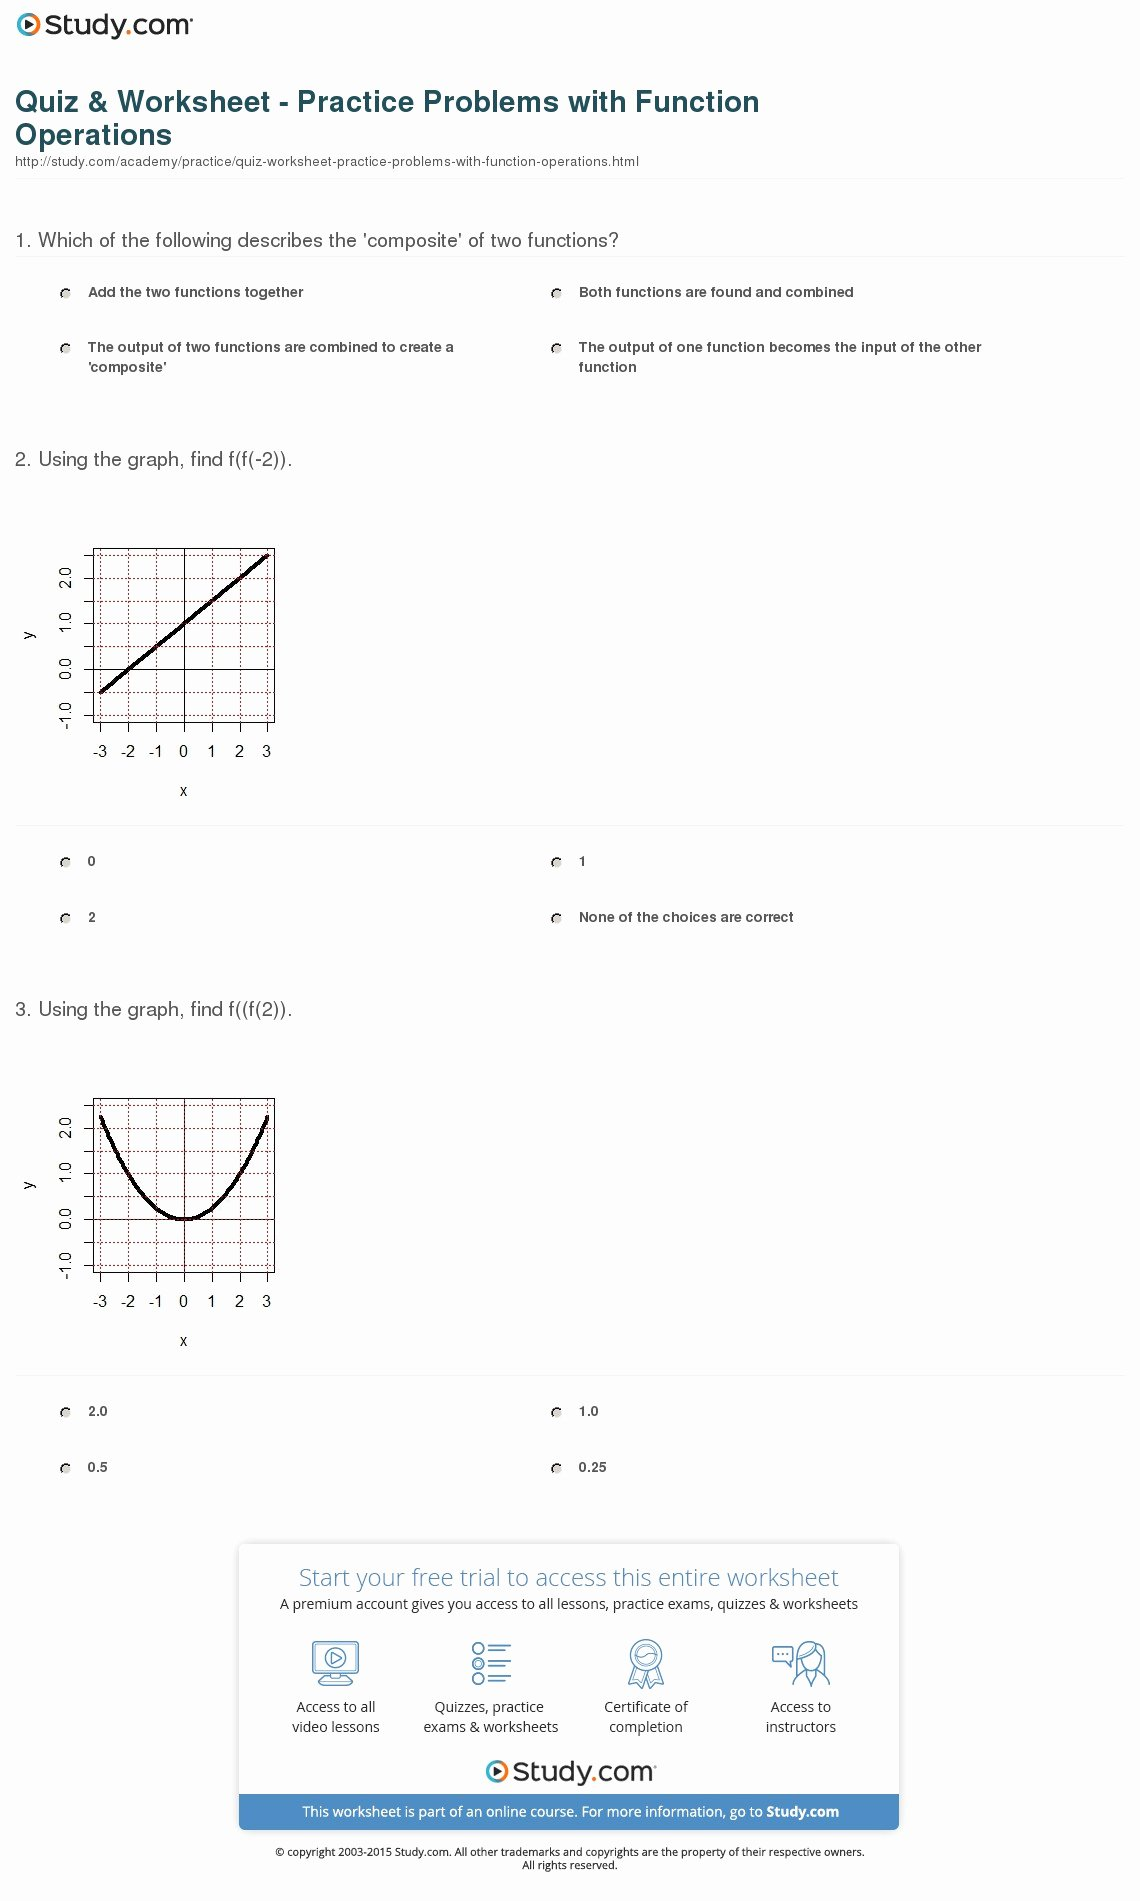 Operations with Functions Worksheet Elegant Quiz & Worksheet Practice Problems with Function